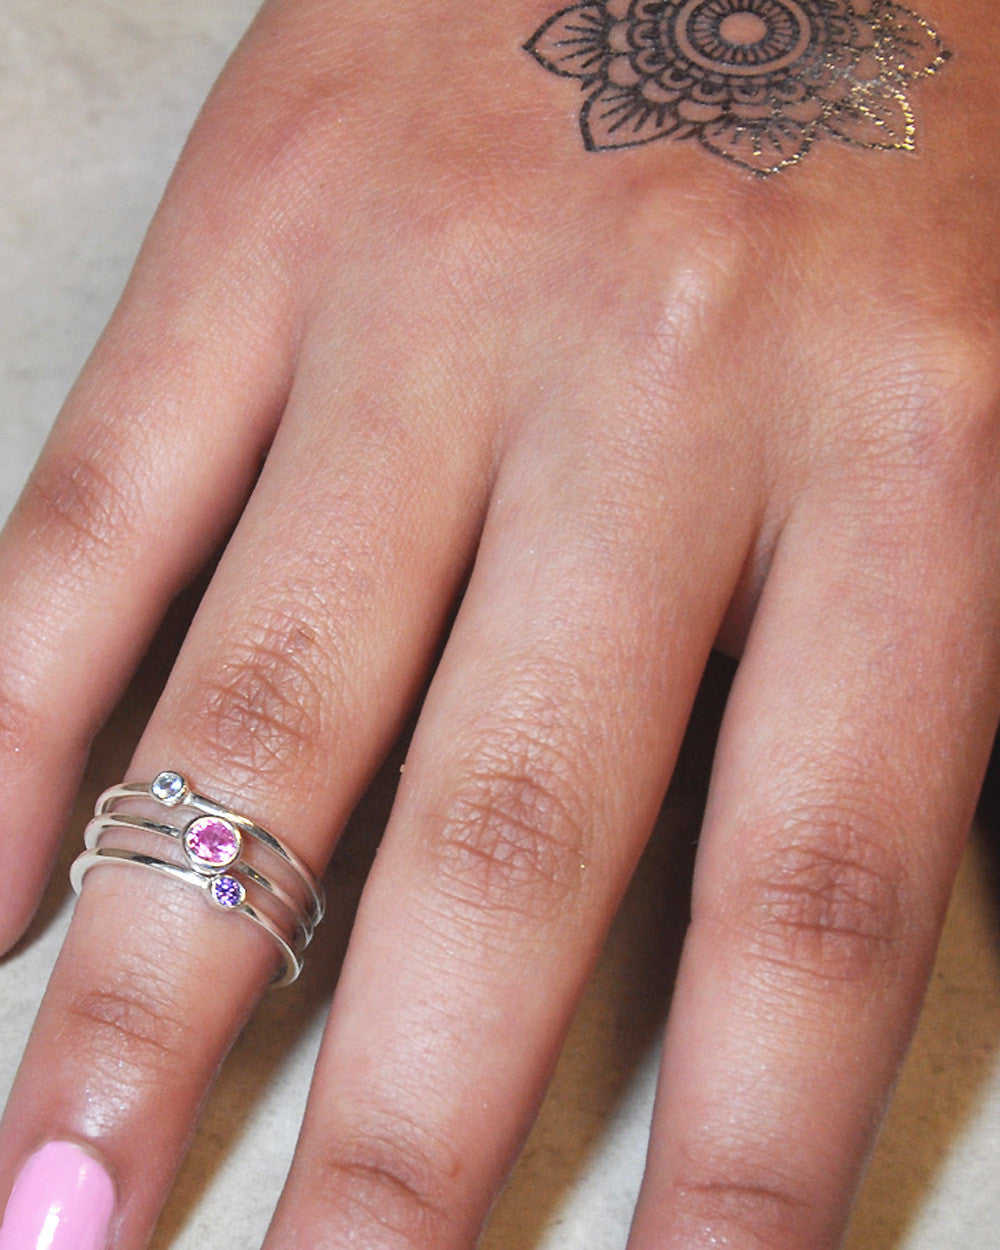 Set of 3 Stackable Sterling Silver Band Rings with Crystals